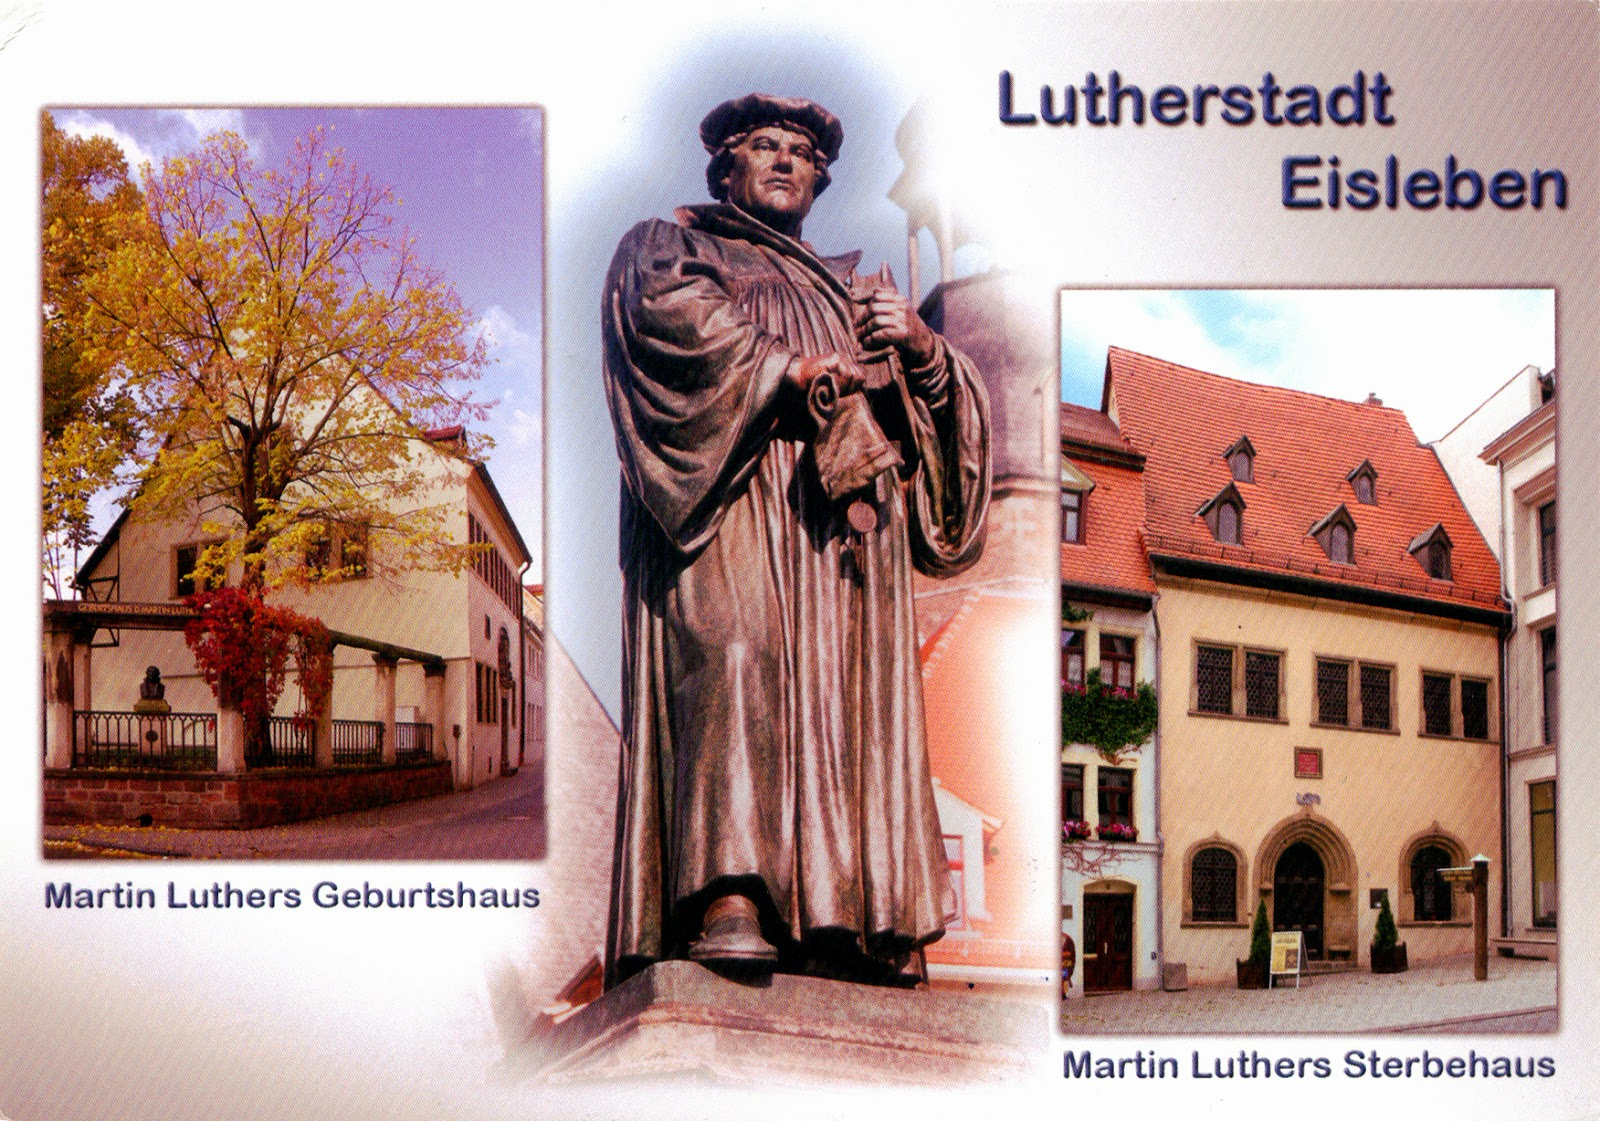 an analysis of martin luther born in eisleben germany Martin luther and the german reformation martin luther was born in eisleben in the county of mansfeld on analysis of his writings suggests that his key.